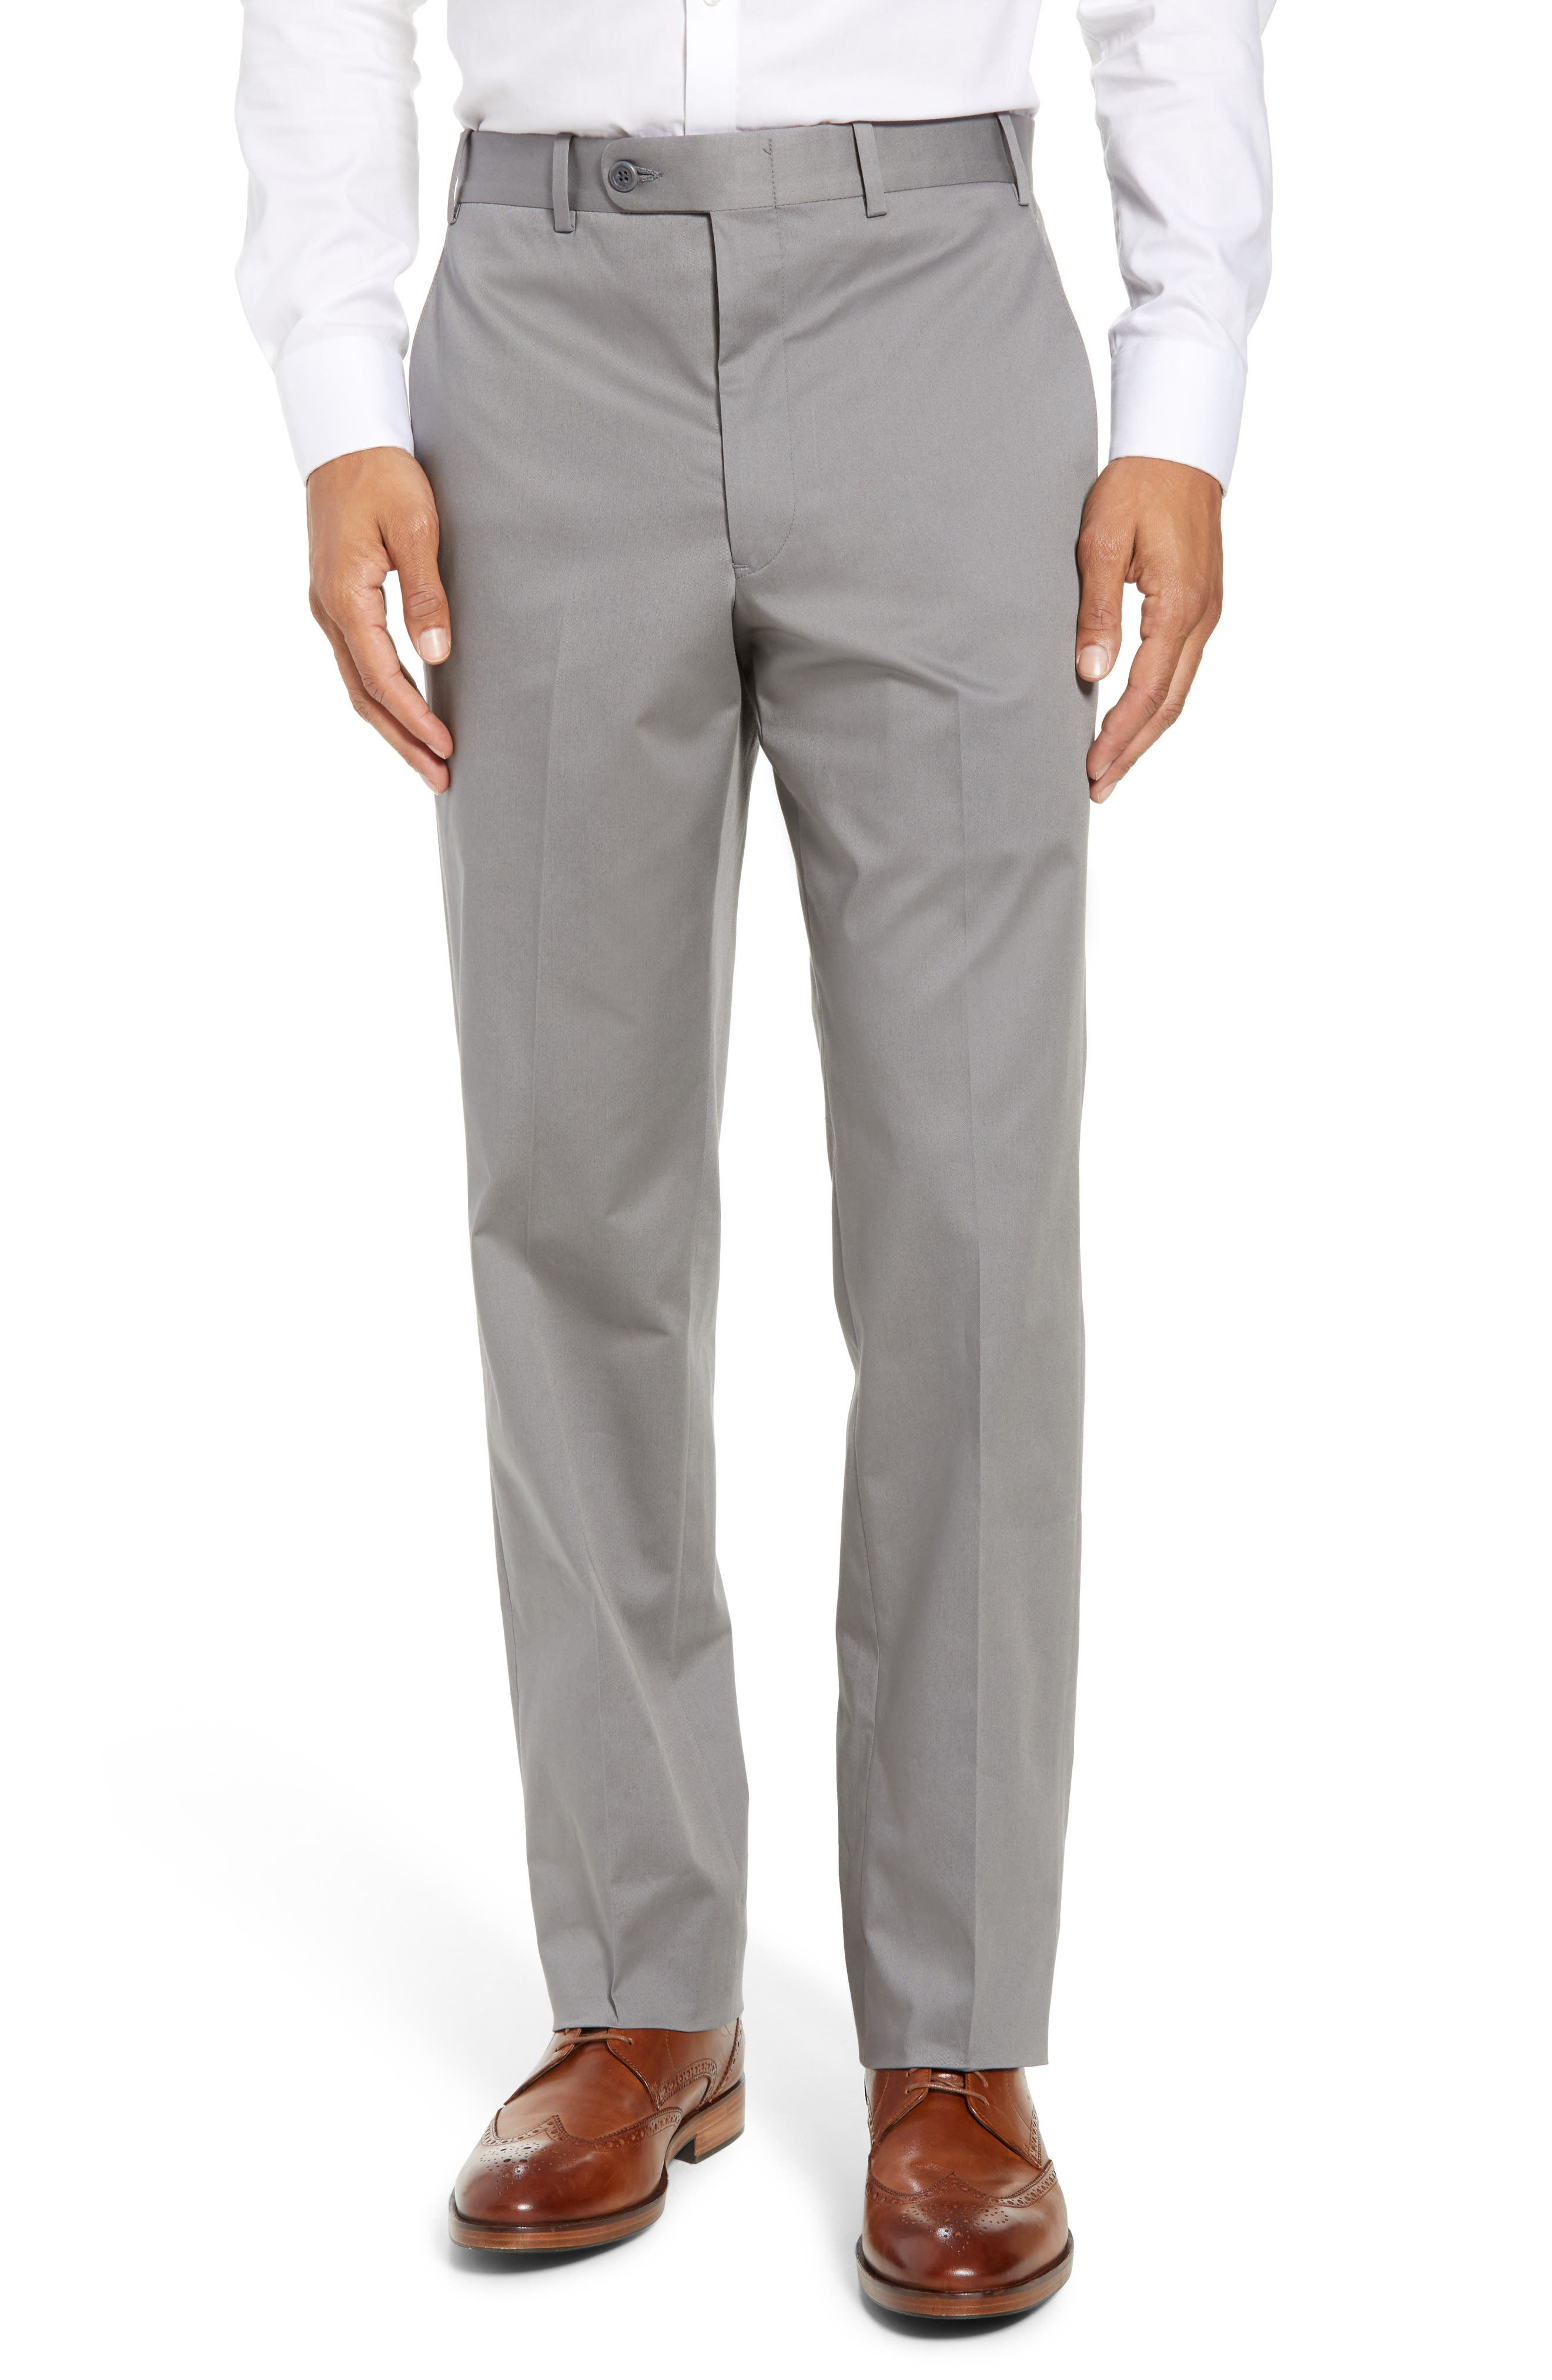 Torino Traditional Fit Flat Front Solid Stretch Cotton Trousers,                             Main thumbnail 1, color,                             GREY